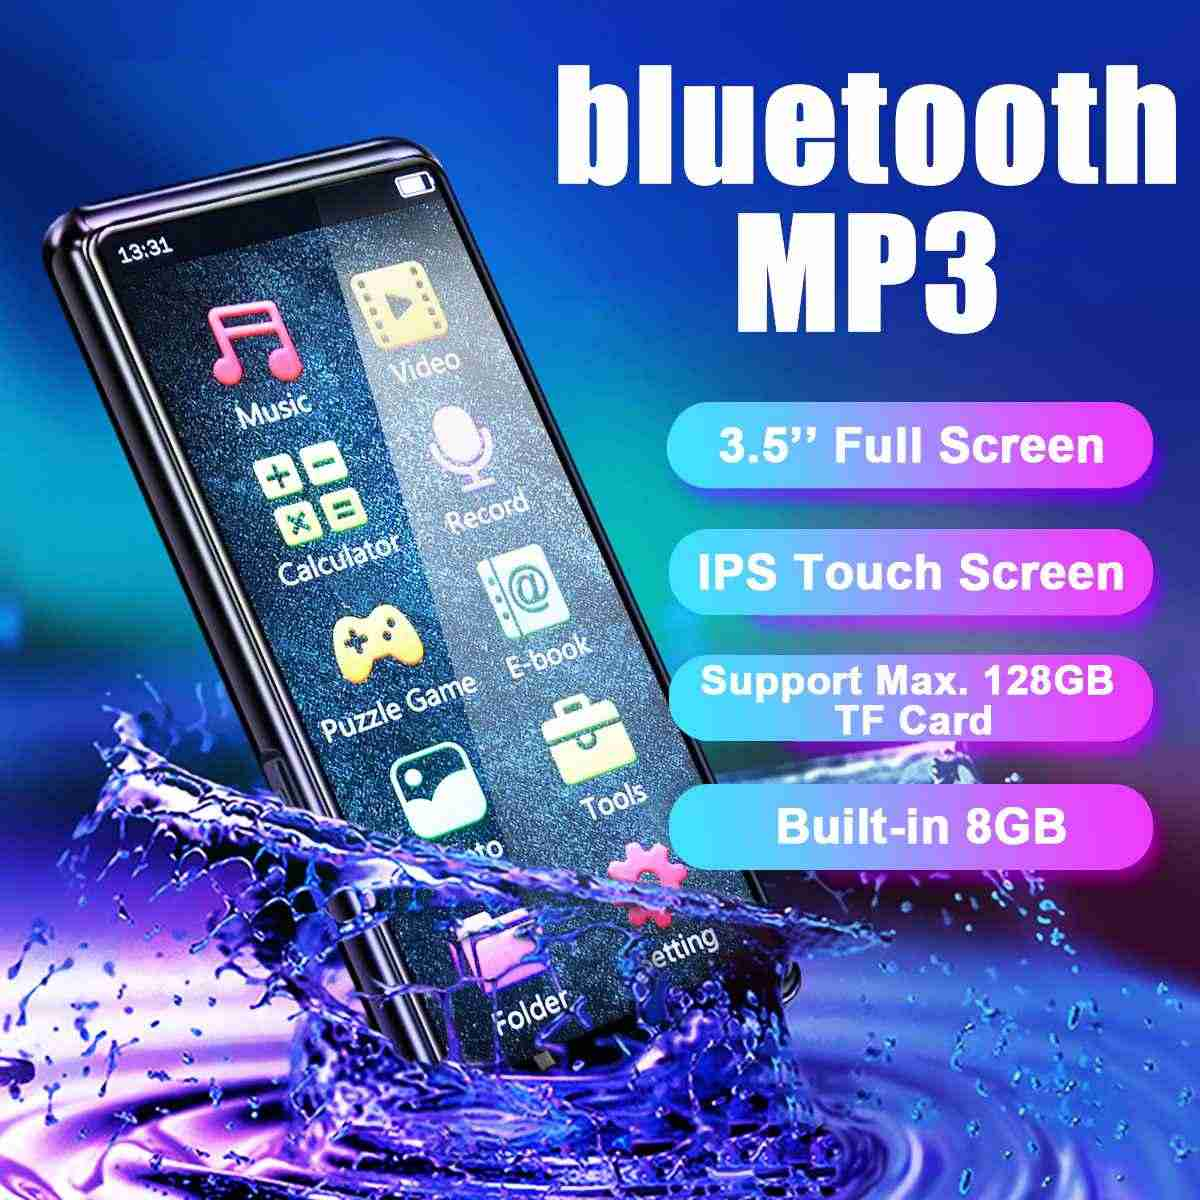 Pantalla táctil de 3,5 pulgadas bluetooth Hifi MP3 reproductor de música Video grabadora de voz Radio FM integrado en altavoces de 8GB tp 128GB TF tarjeta